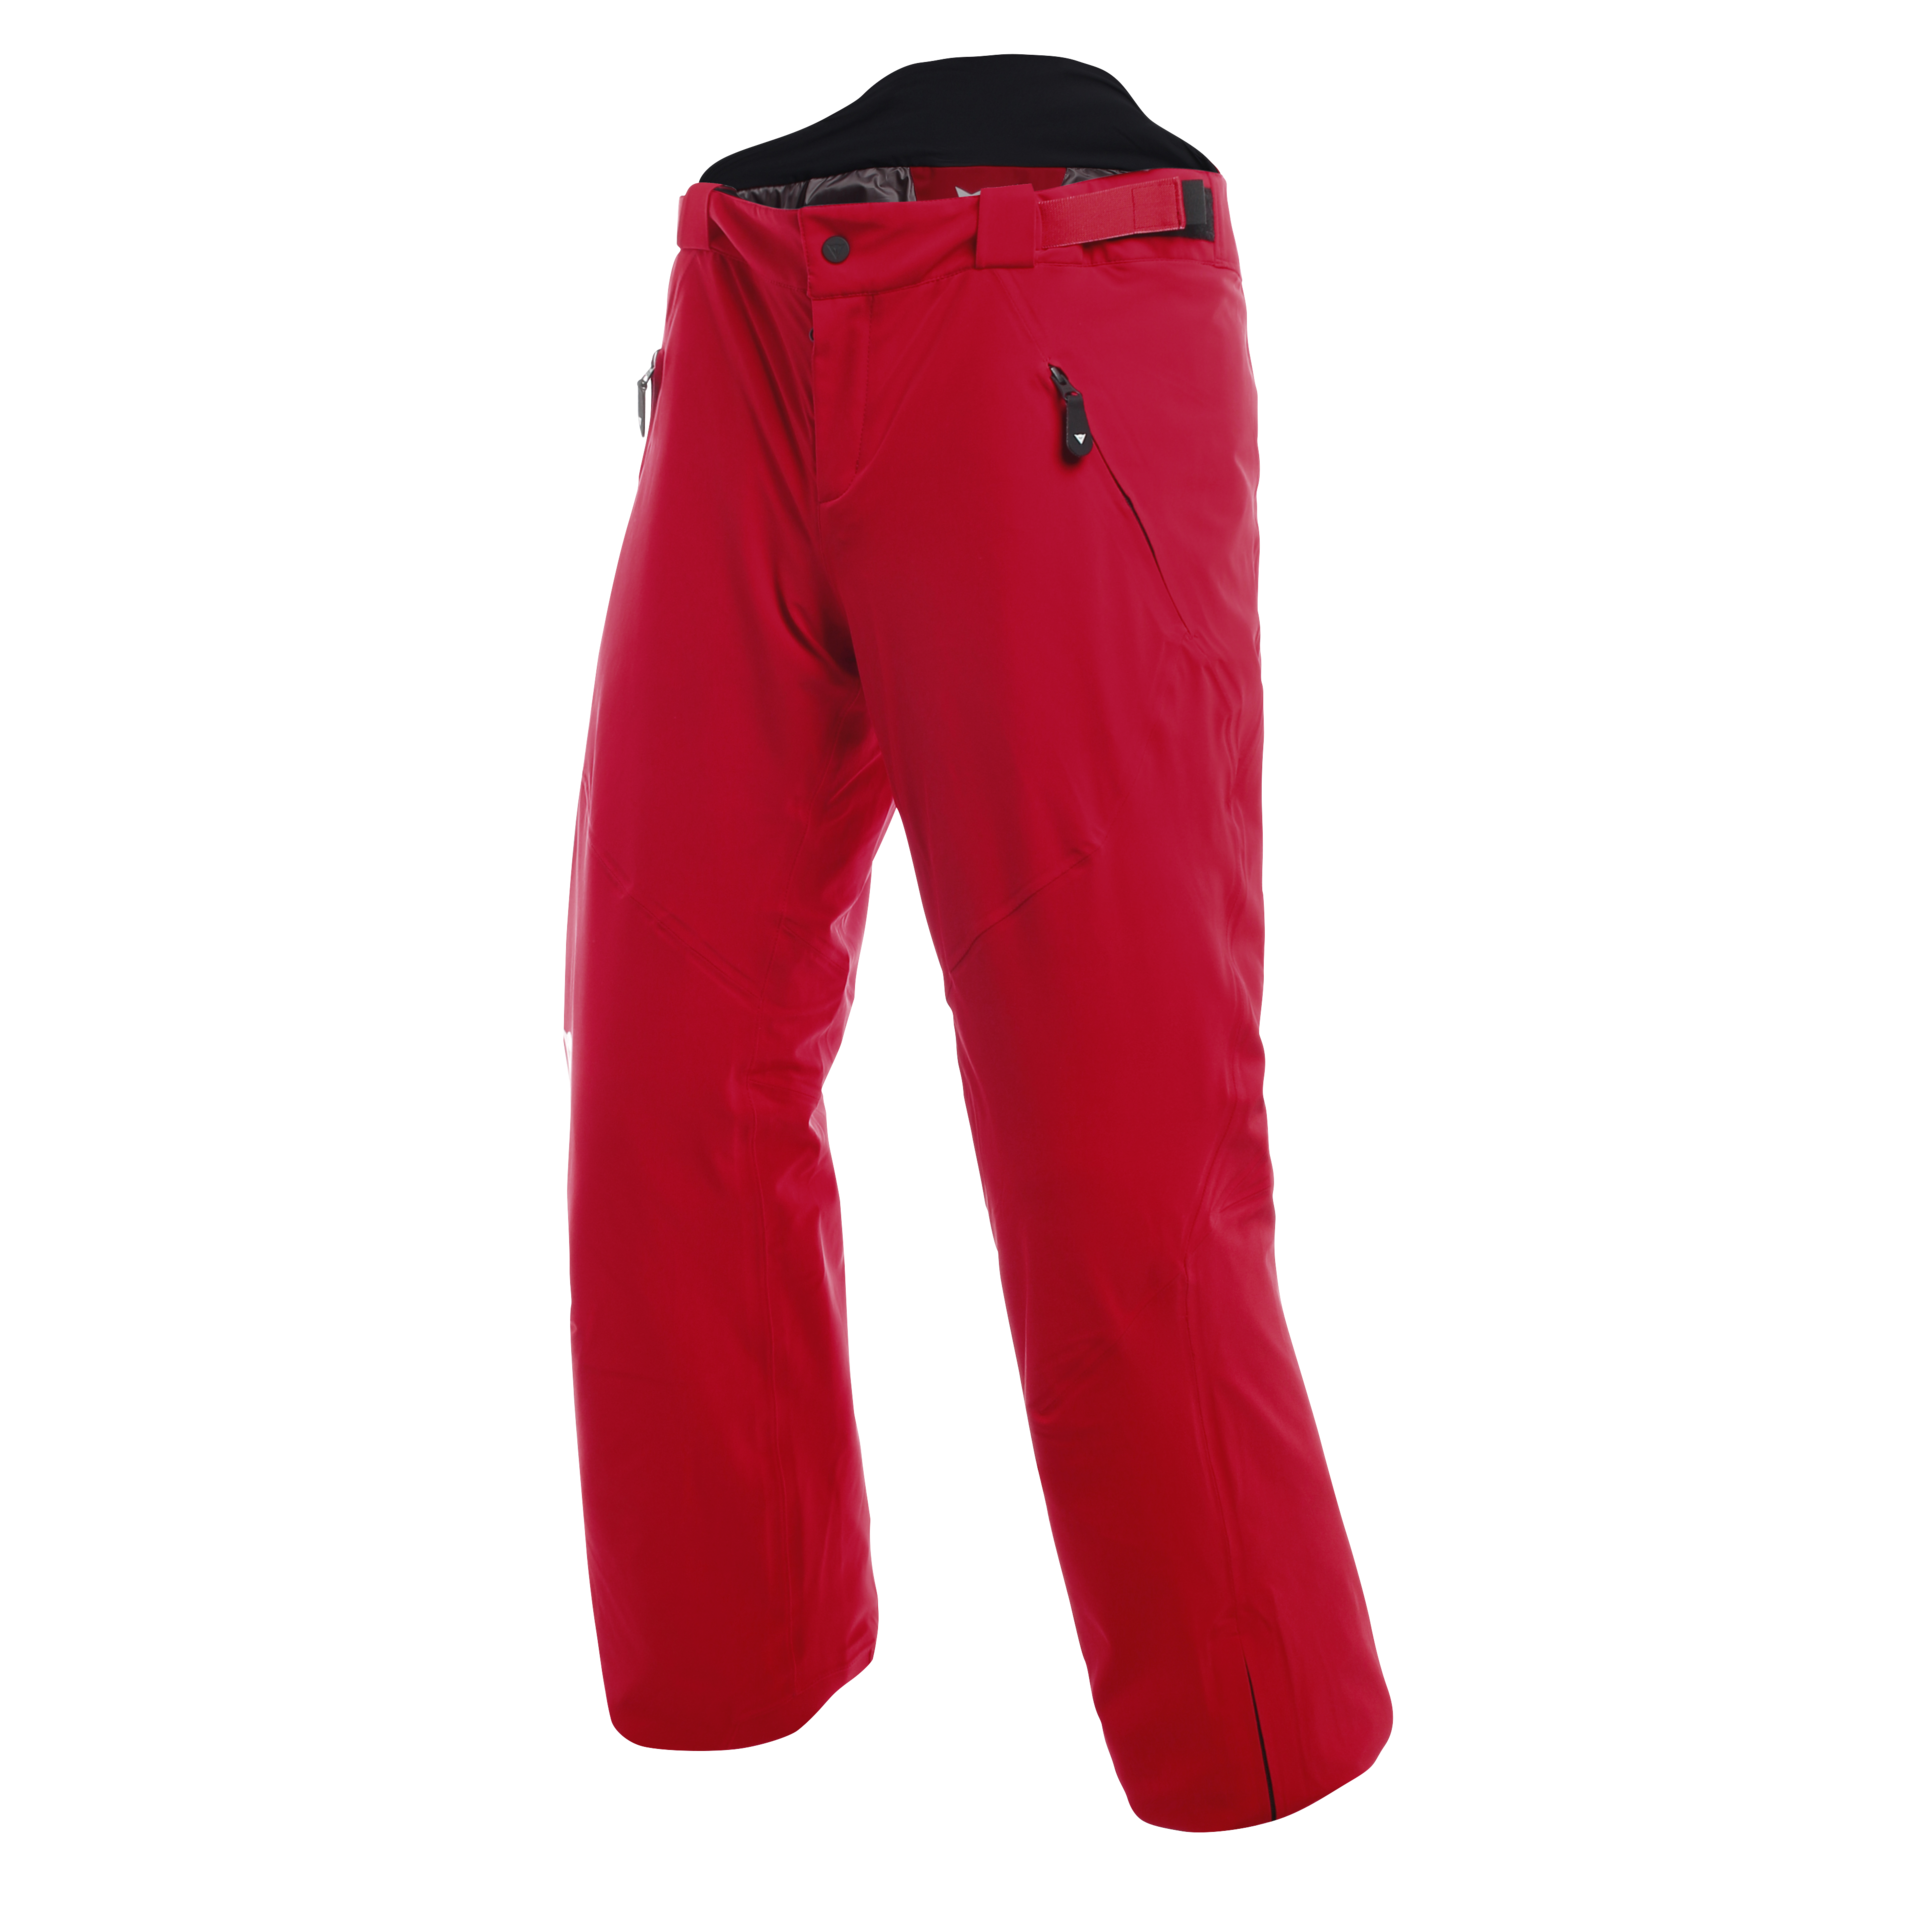 DAINESE PANT. HP2 P M1 - (Y44 CHILI PEPPER ) - 2019